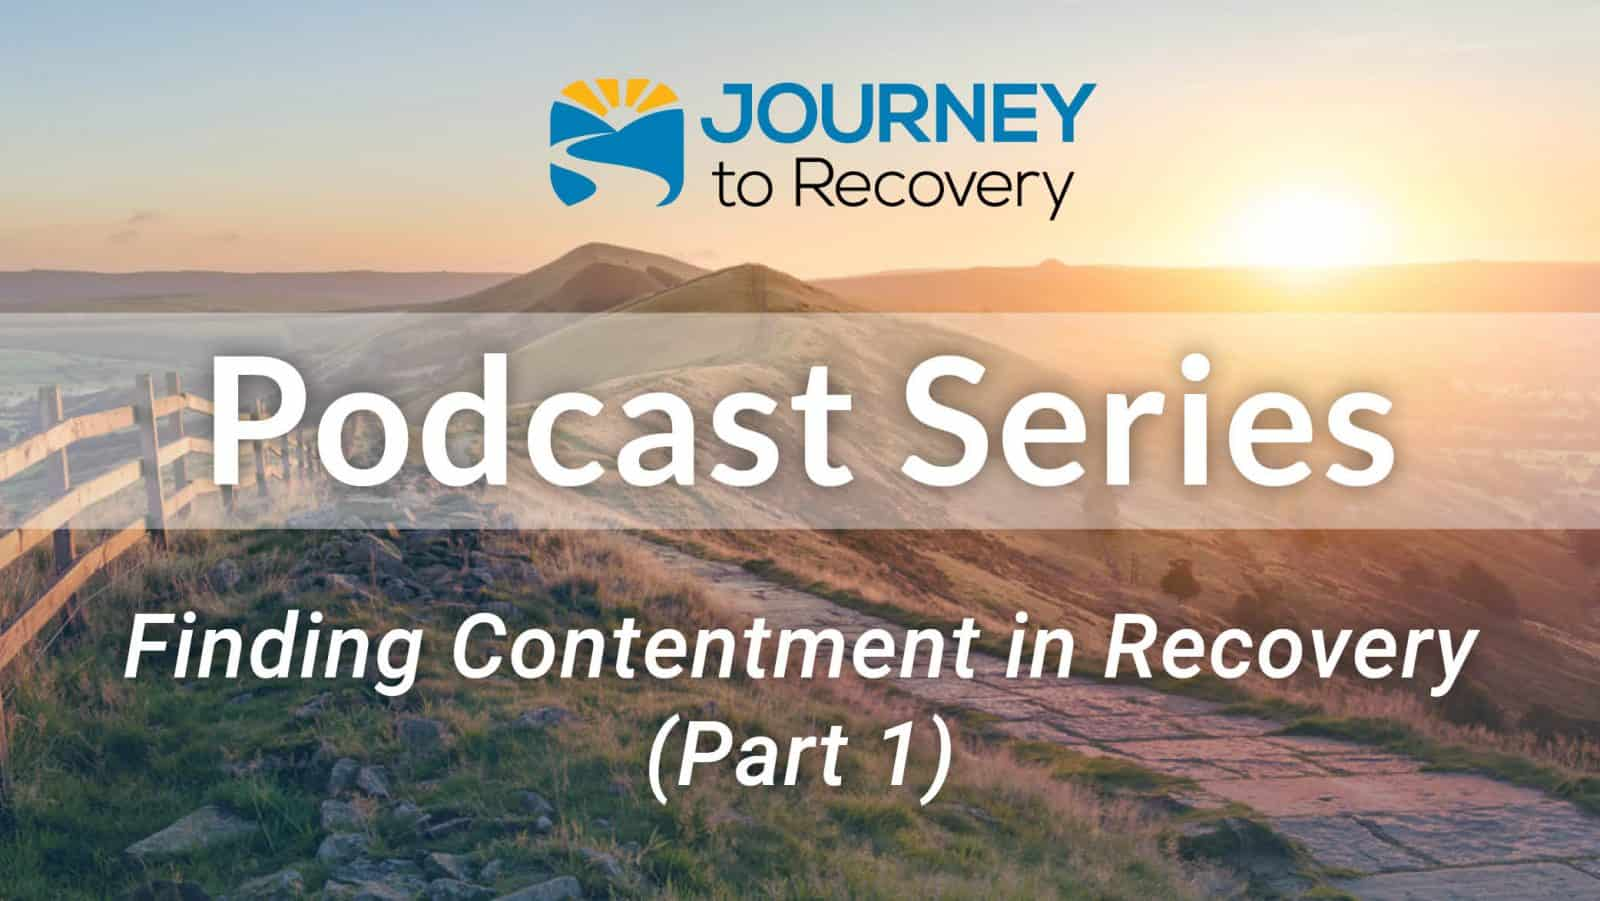 Finding Contentment in Recovery (Part 1)